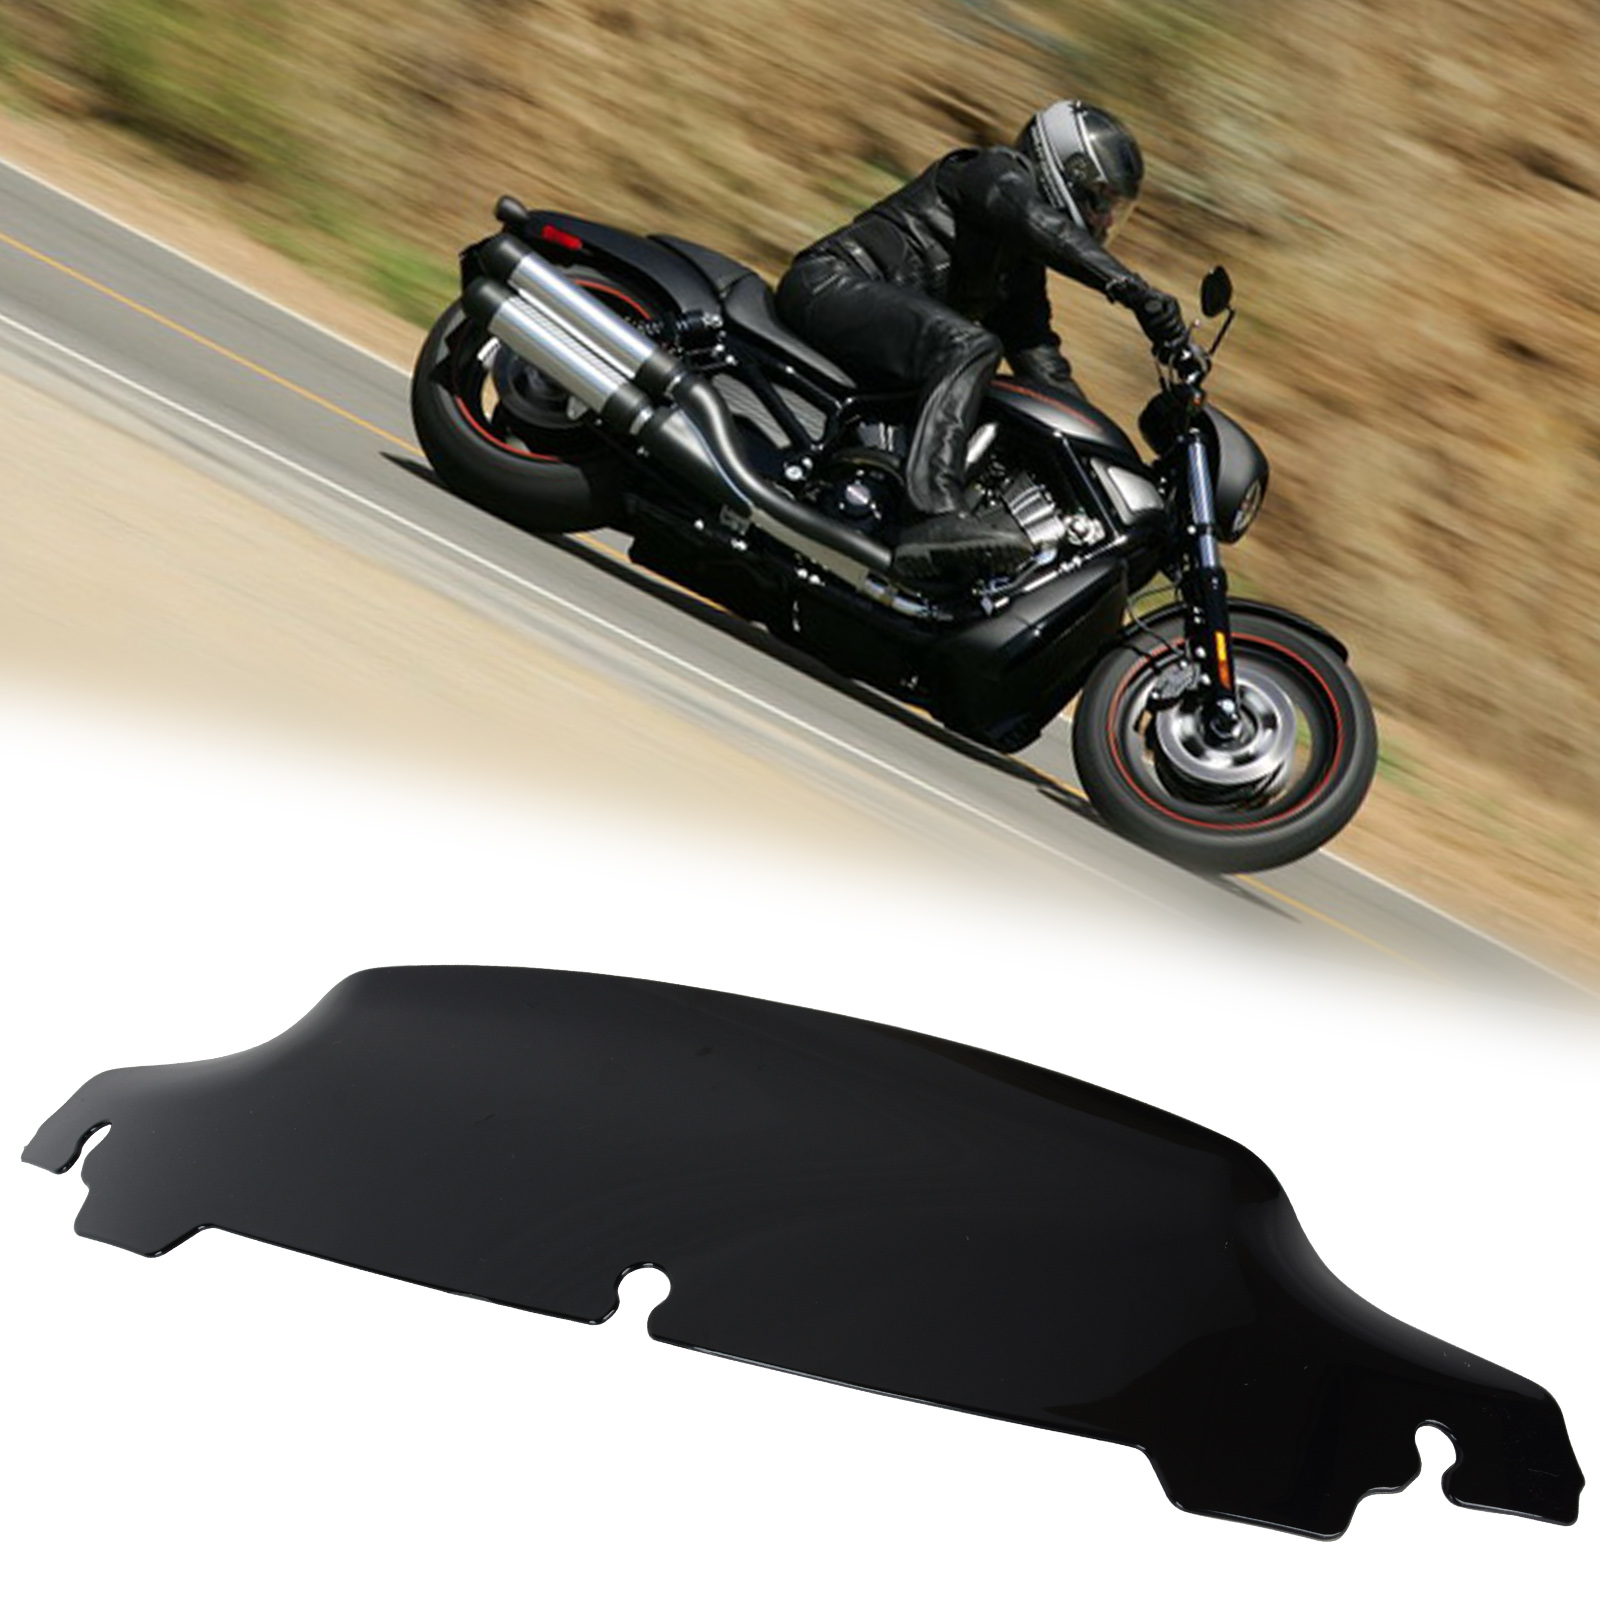 High Quality ABS Plastic Black 4 Wave Windshield Windscreen for 14-UP Harley Electra Street Glide Touring Motorcycle Accessory